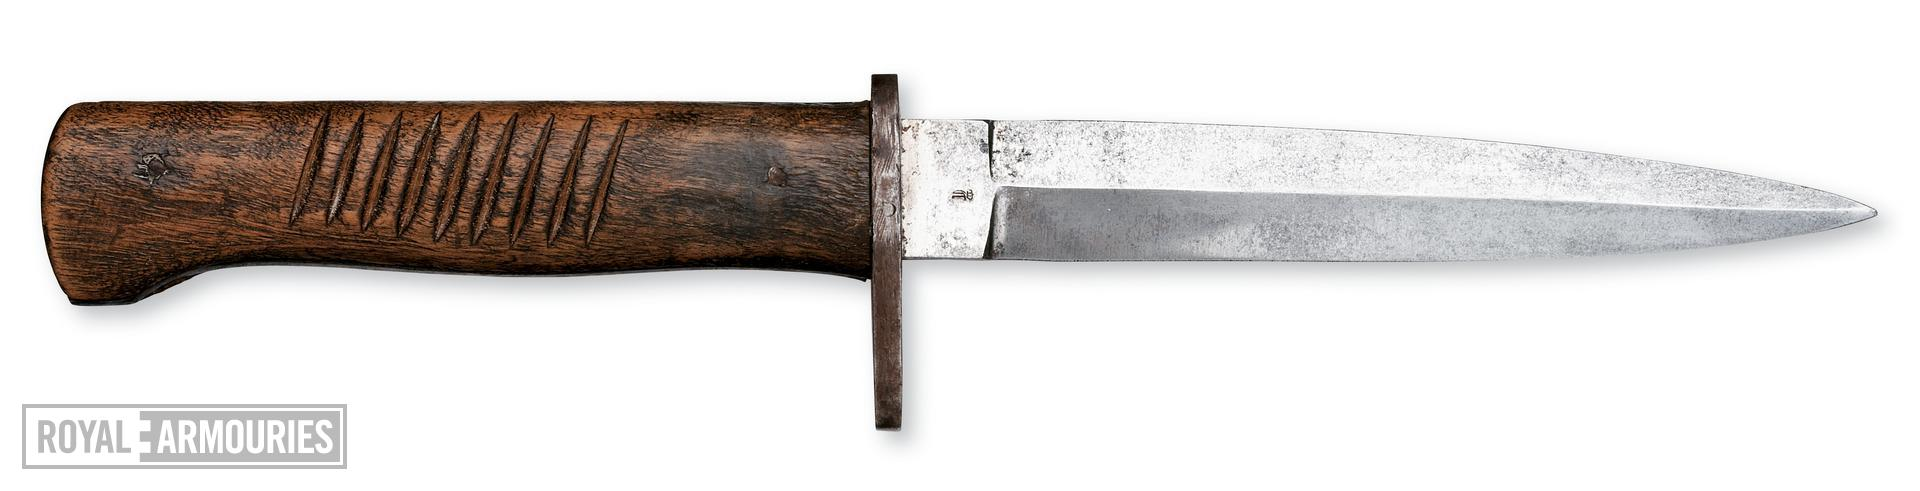 Trench knife. German, 1914-18.